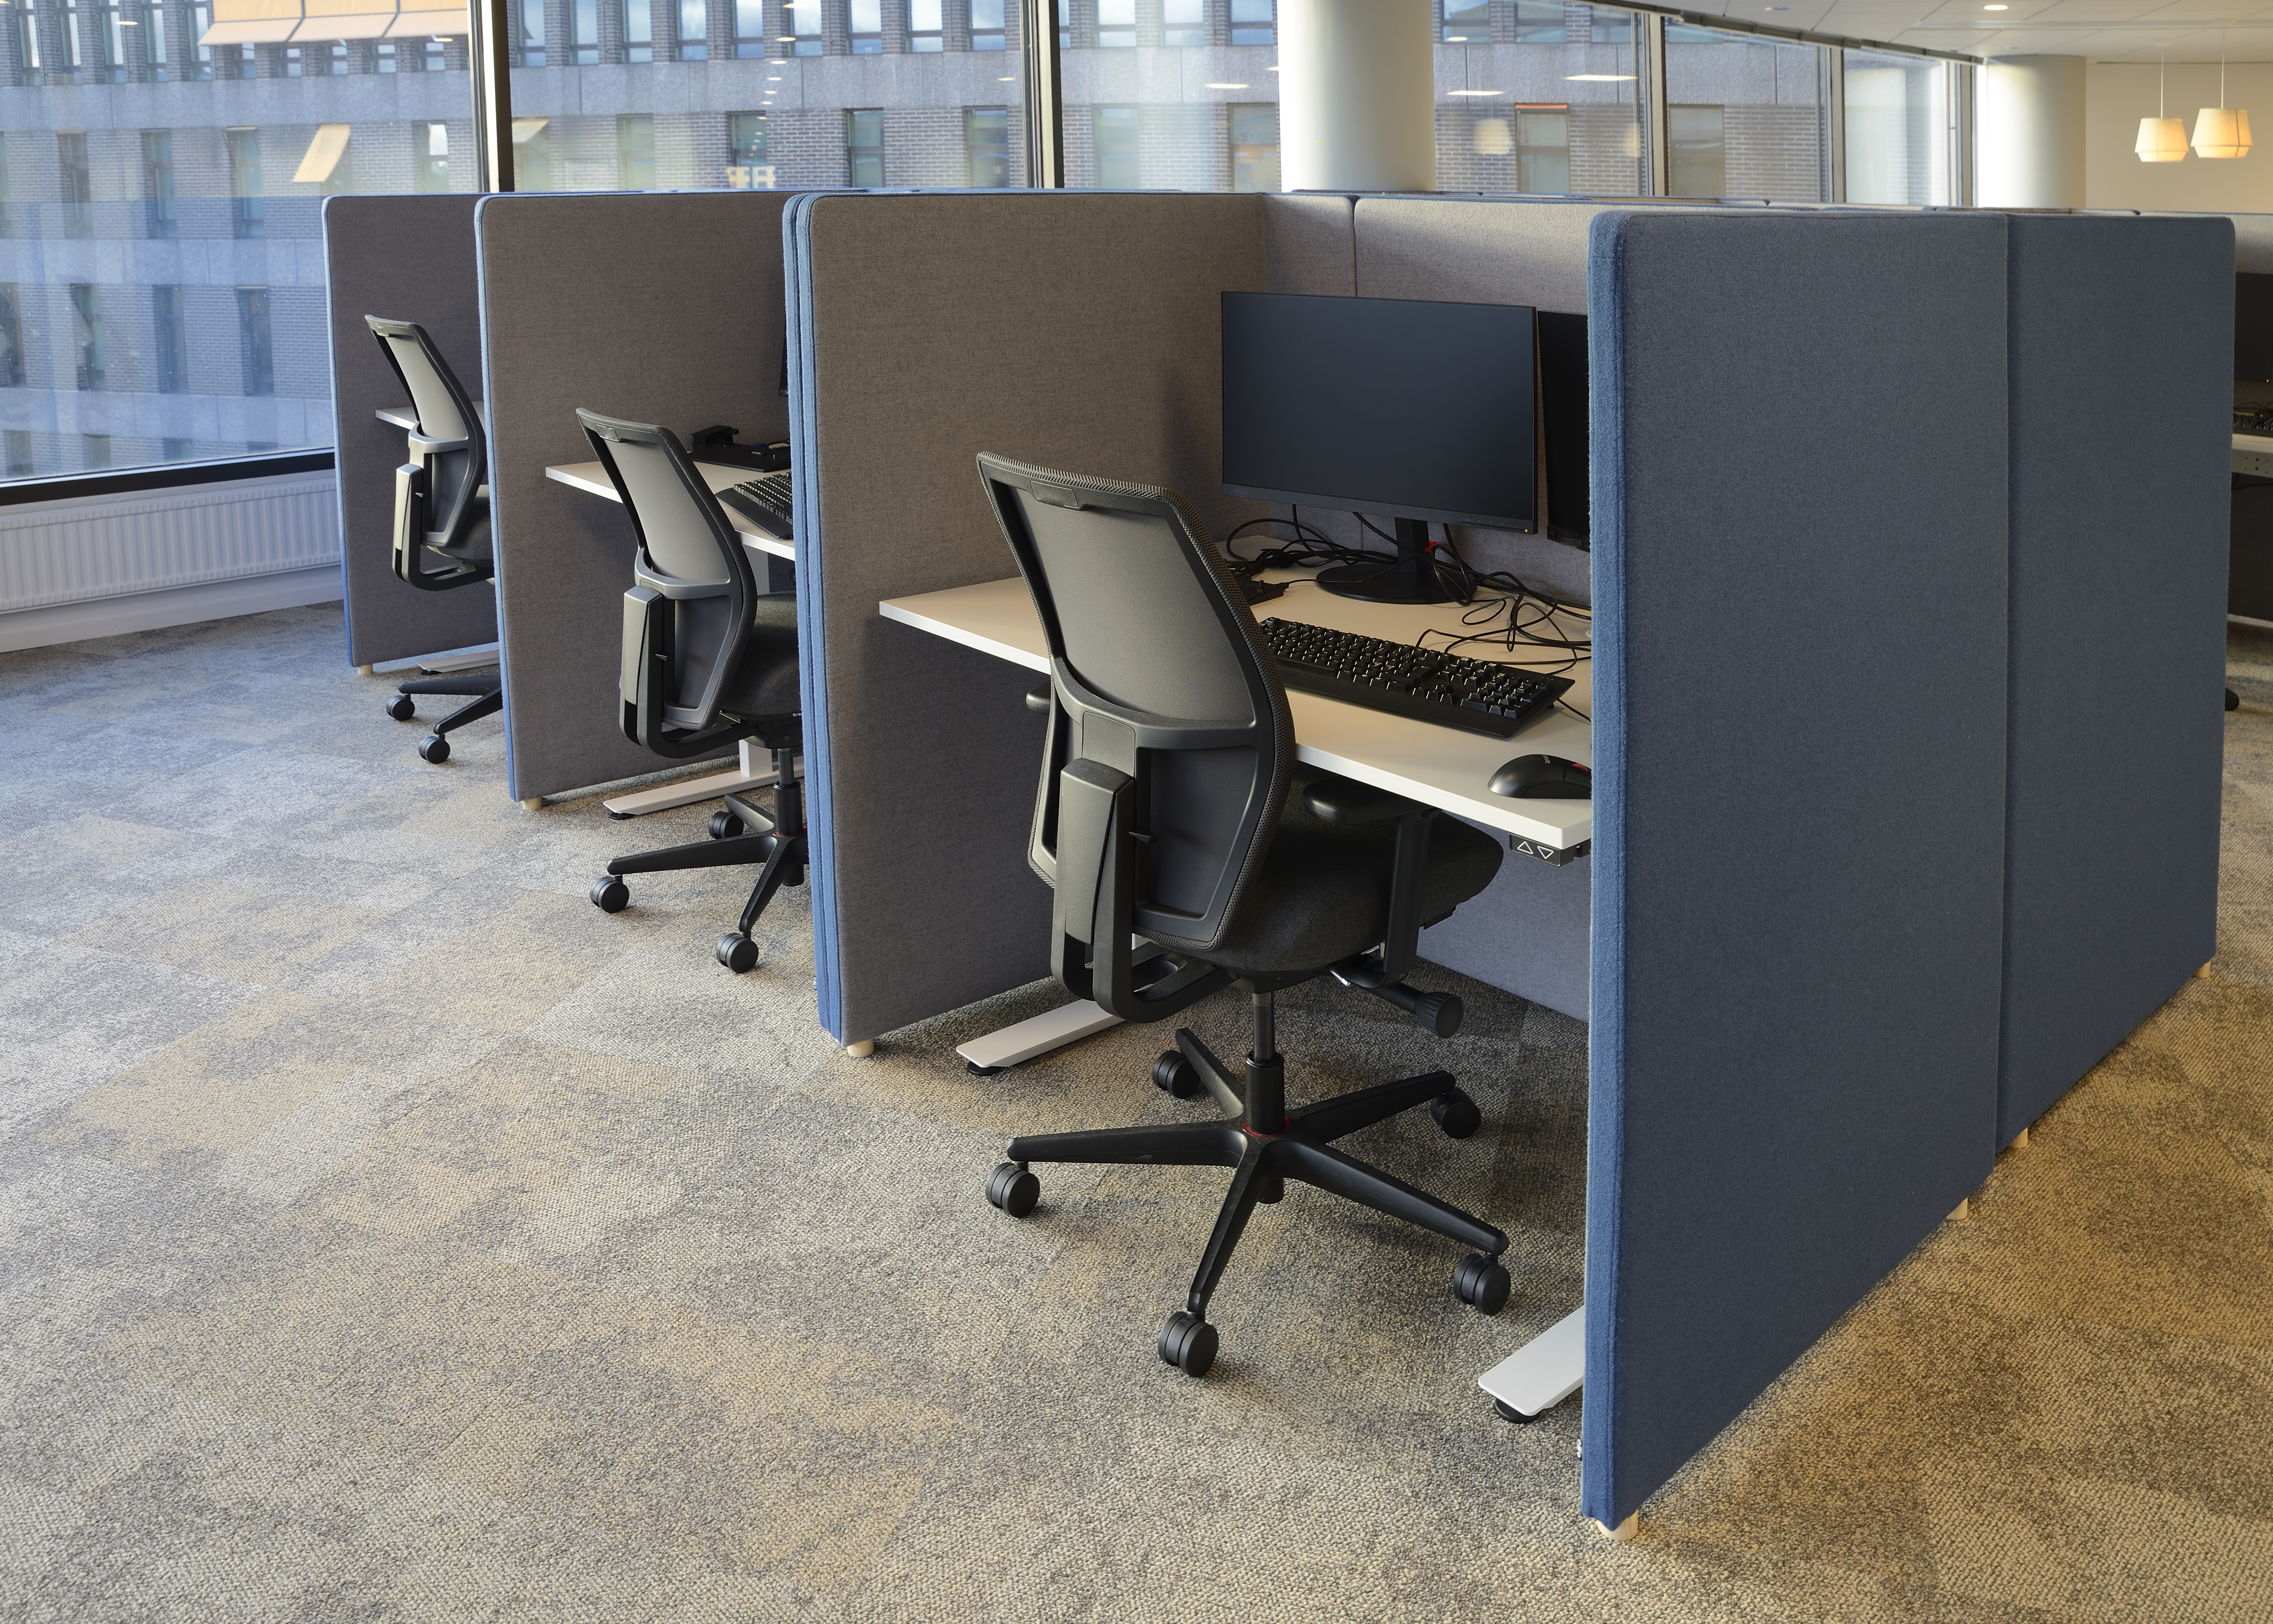 25508813-empty-office-chairs-in-a-row